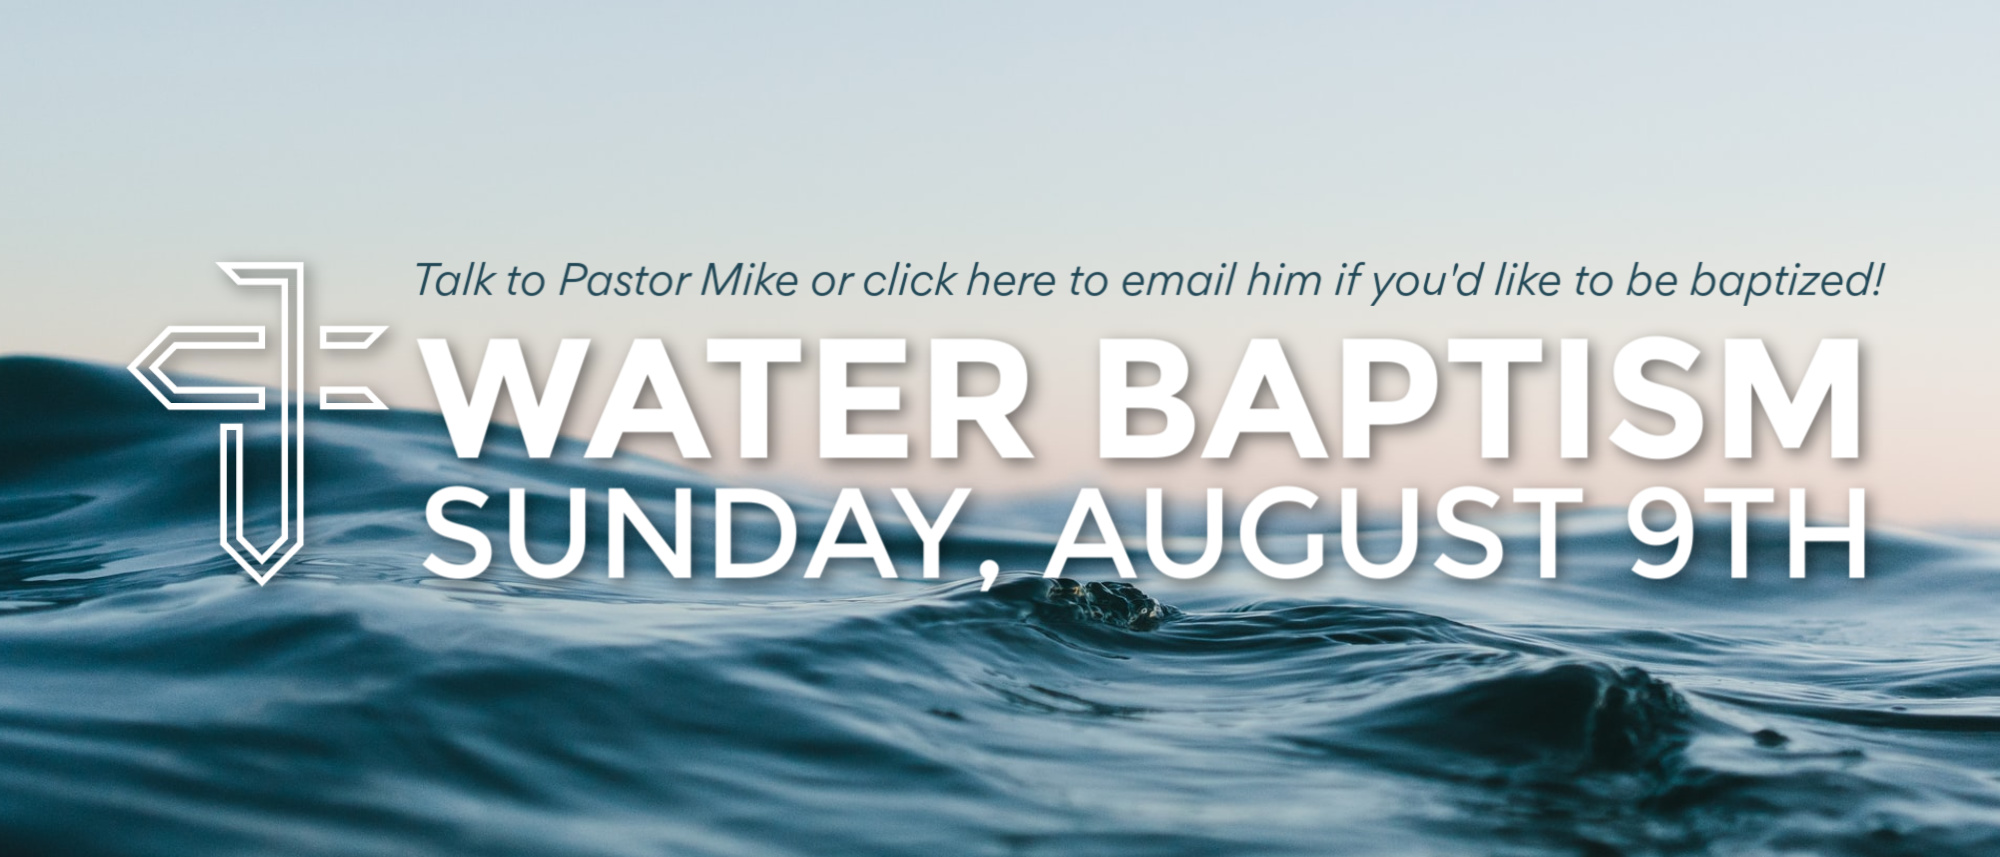 Water baptism at Journey Church in River Falls on August 9th